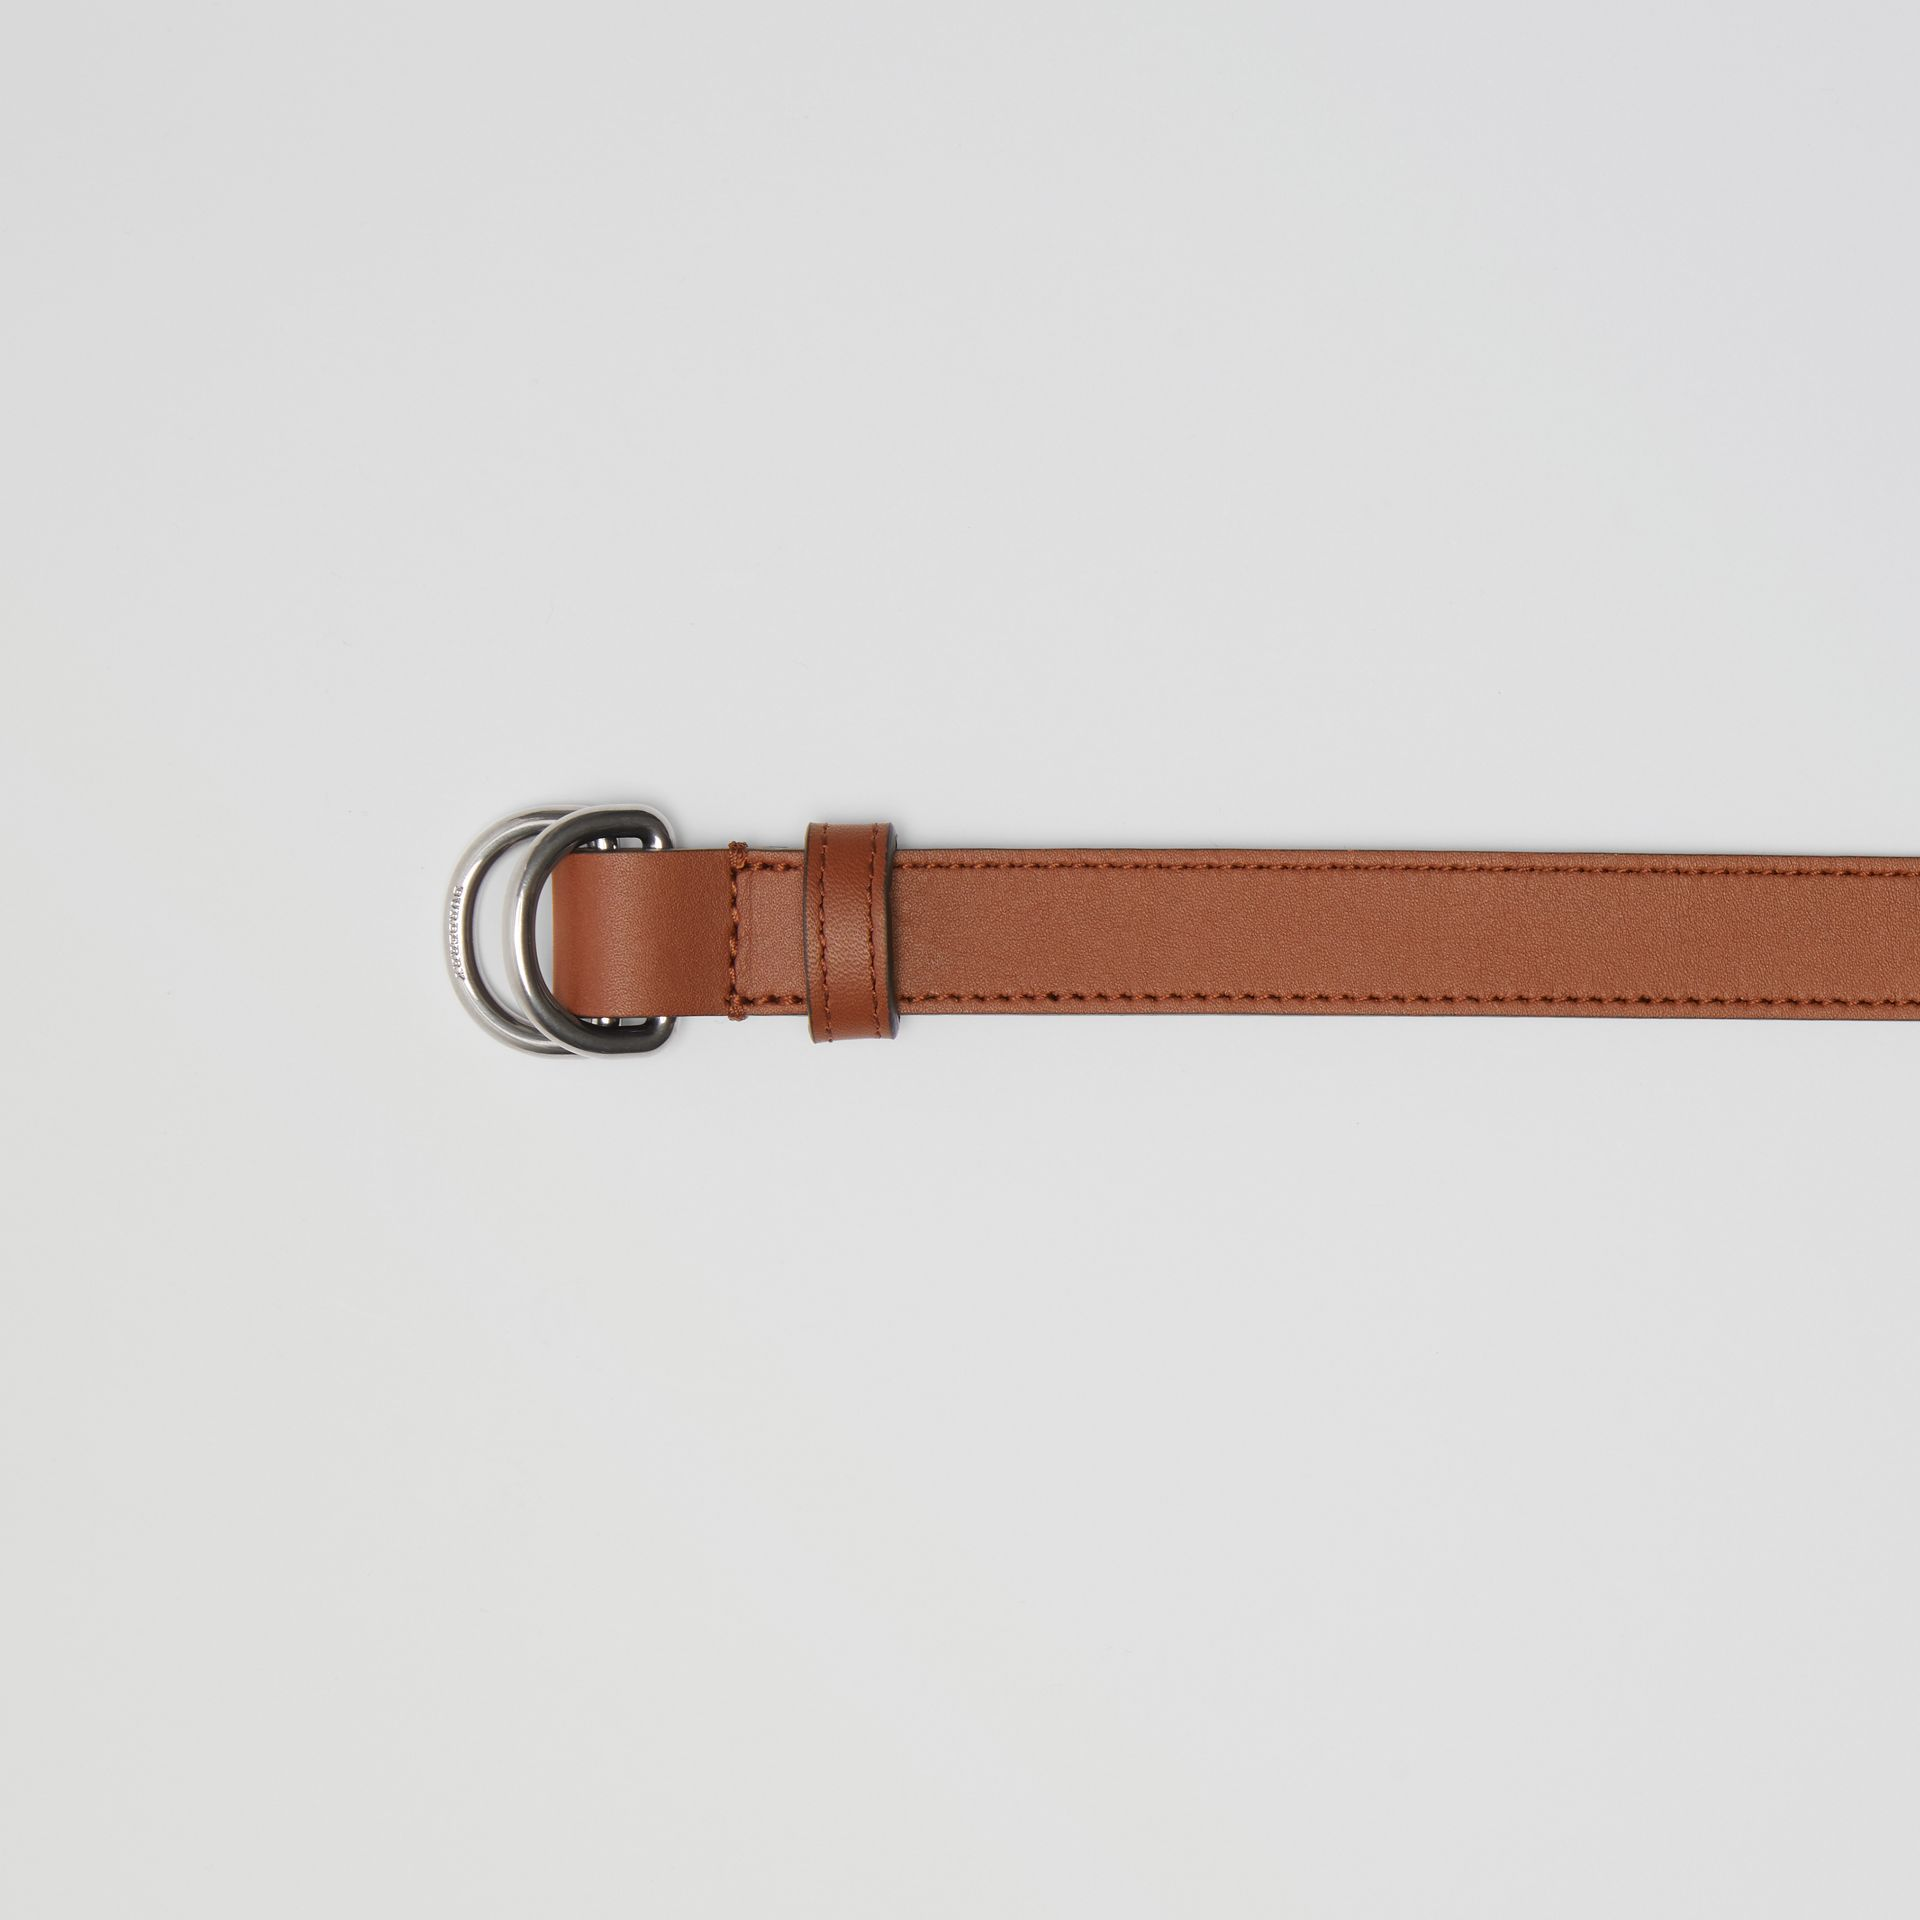 Slim Leather Double D-ring Belt in Tan/natural Silver - Women | Burberry Singapore - gallery image 1